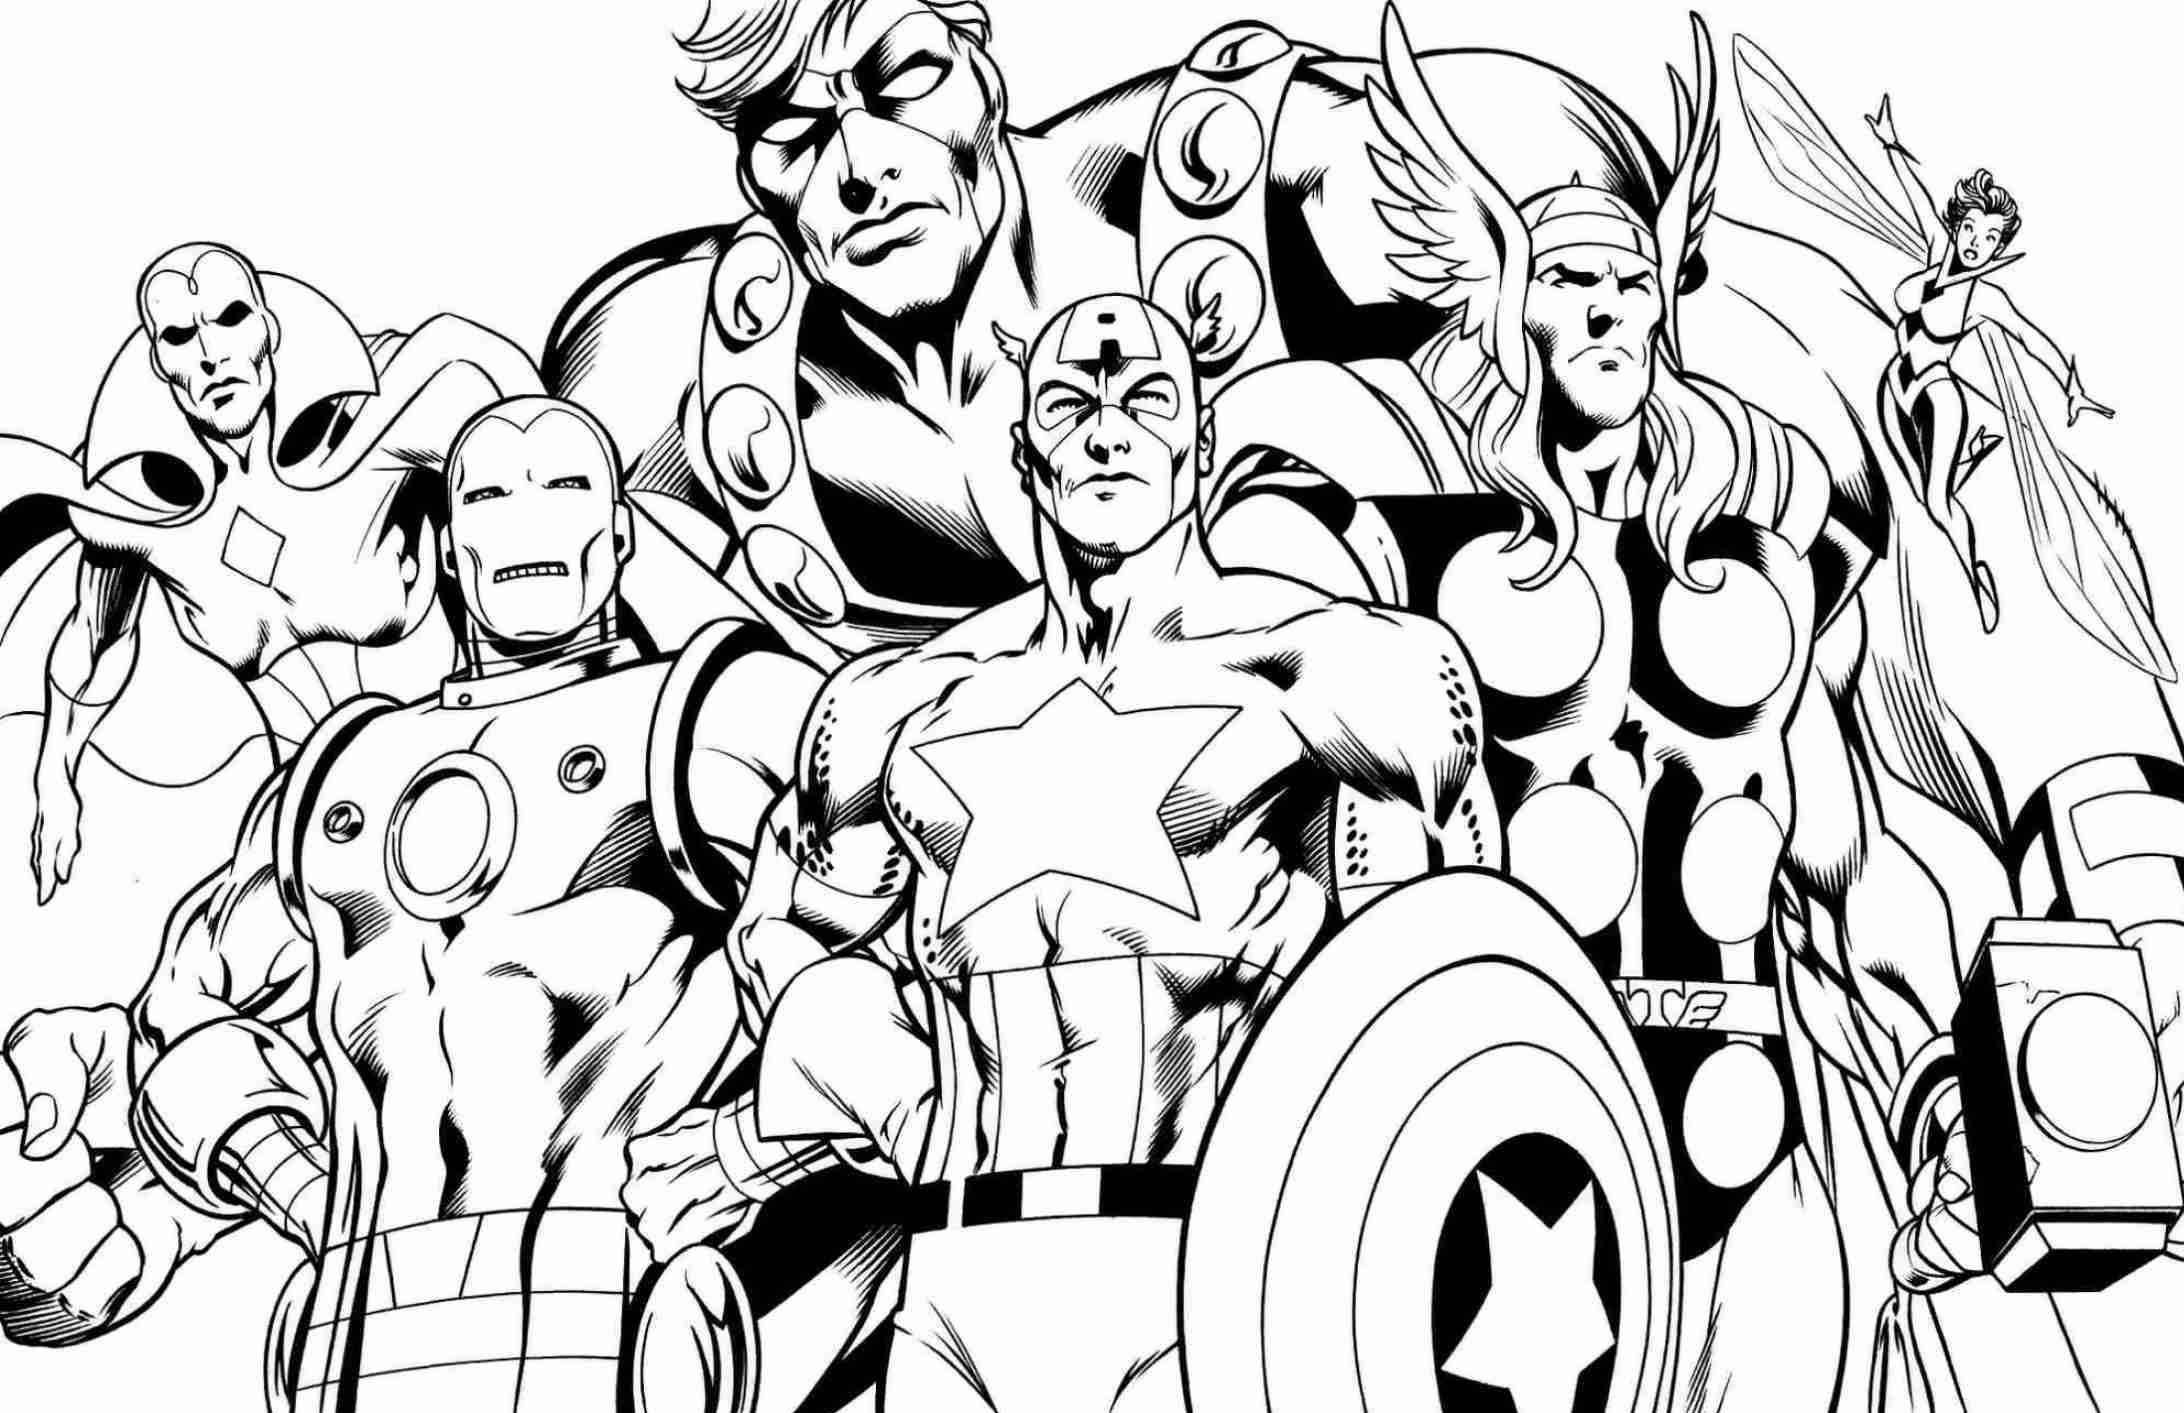 action hero coloring pages action man underwater coloring pages hellokidscom pages coloring hero action